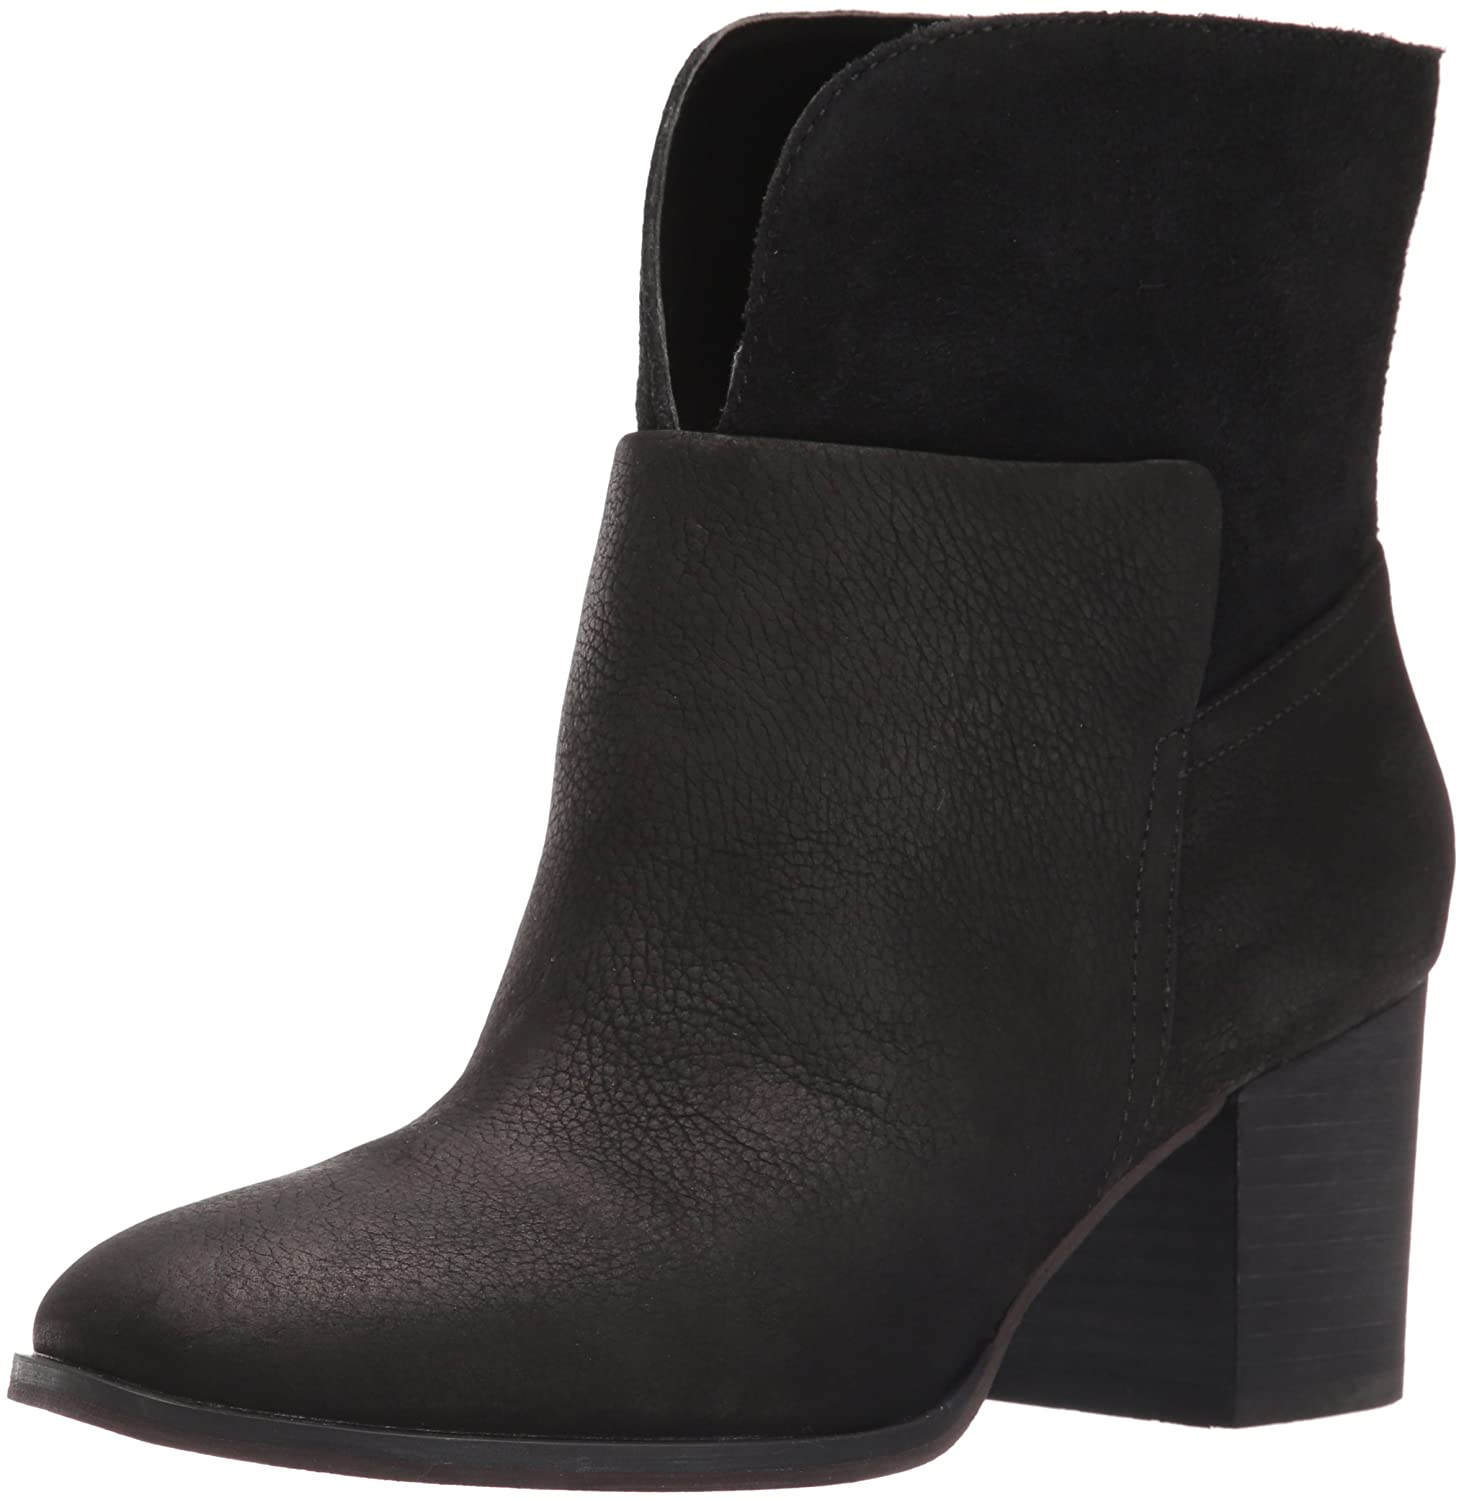 Women's Dale Ankle Bootie Dark Brown 11 M US